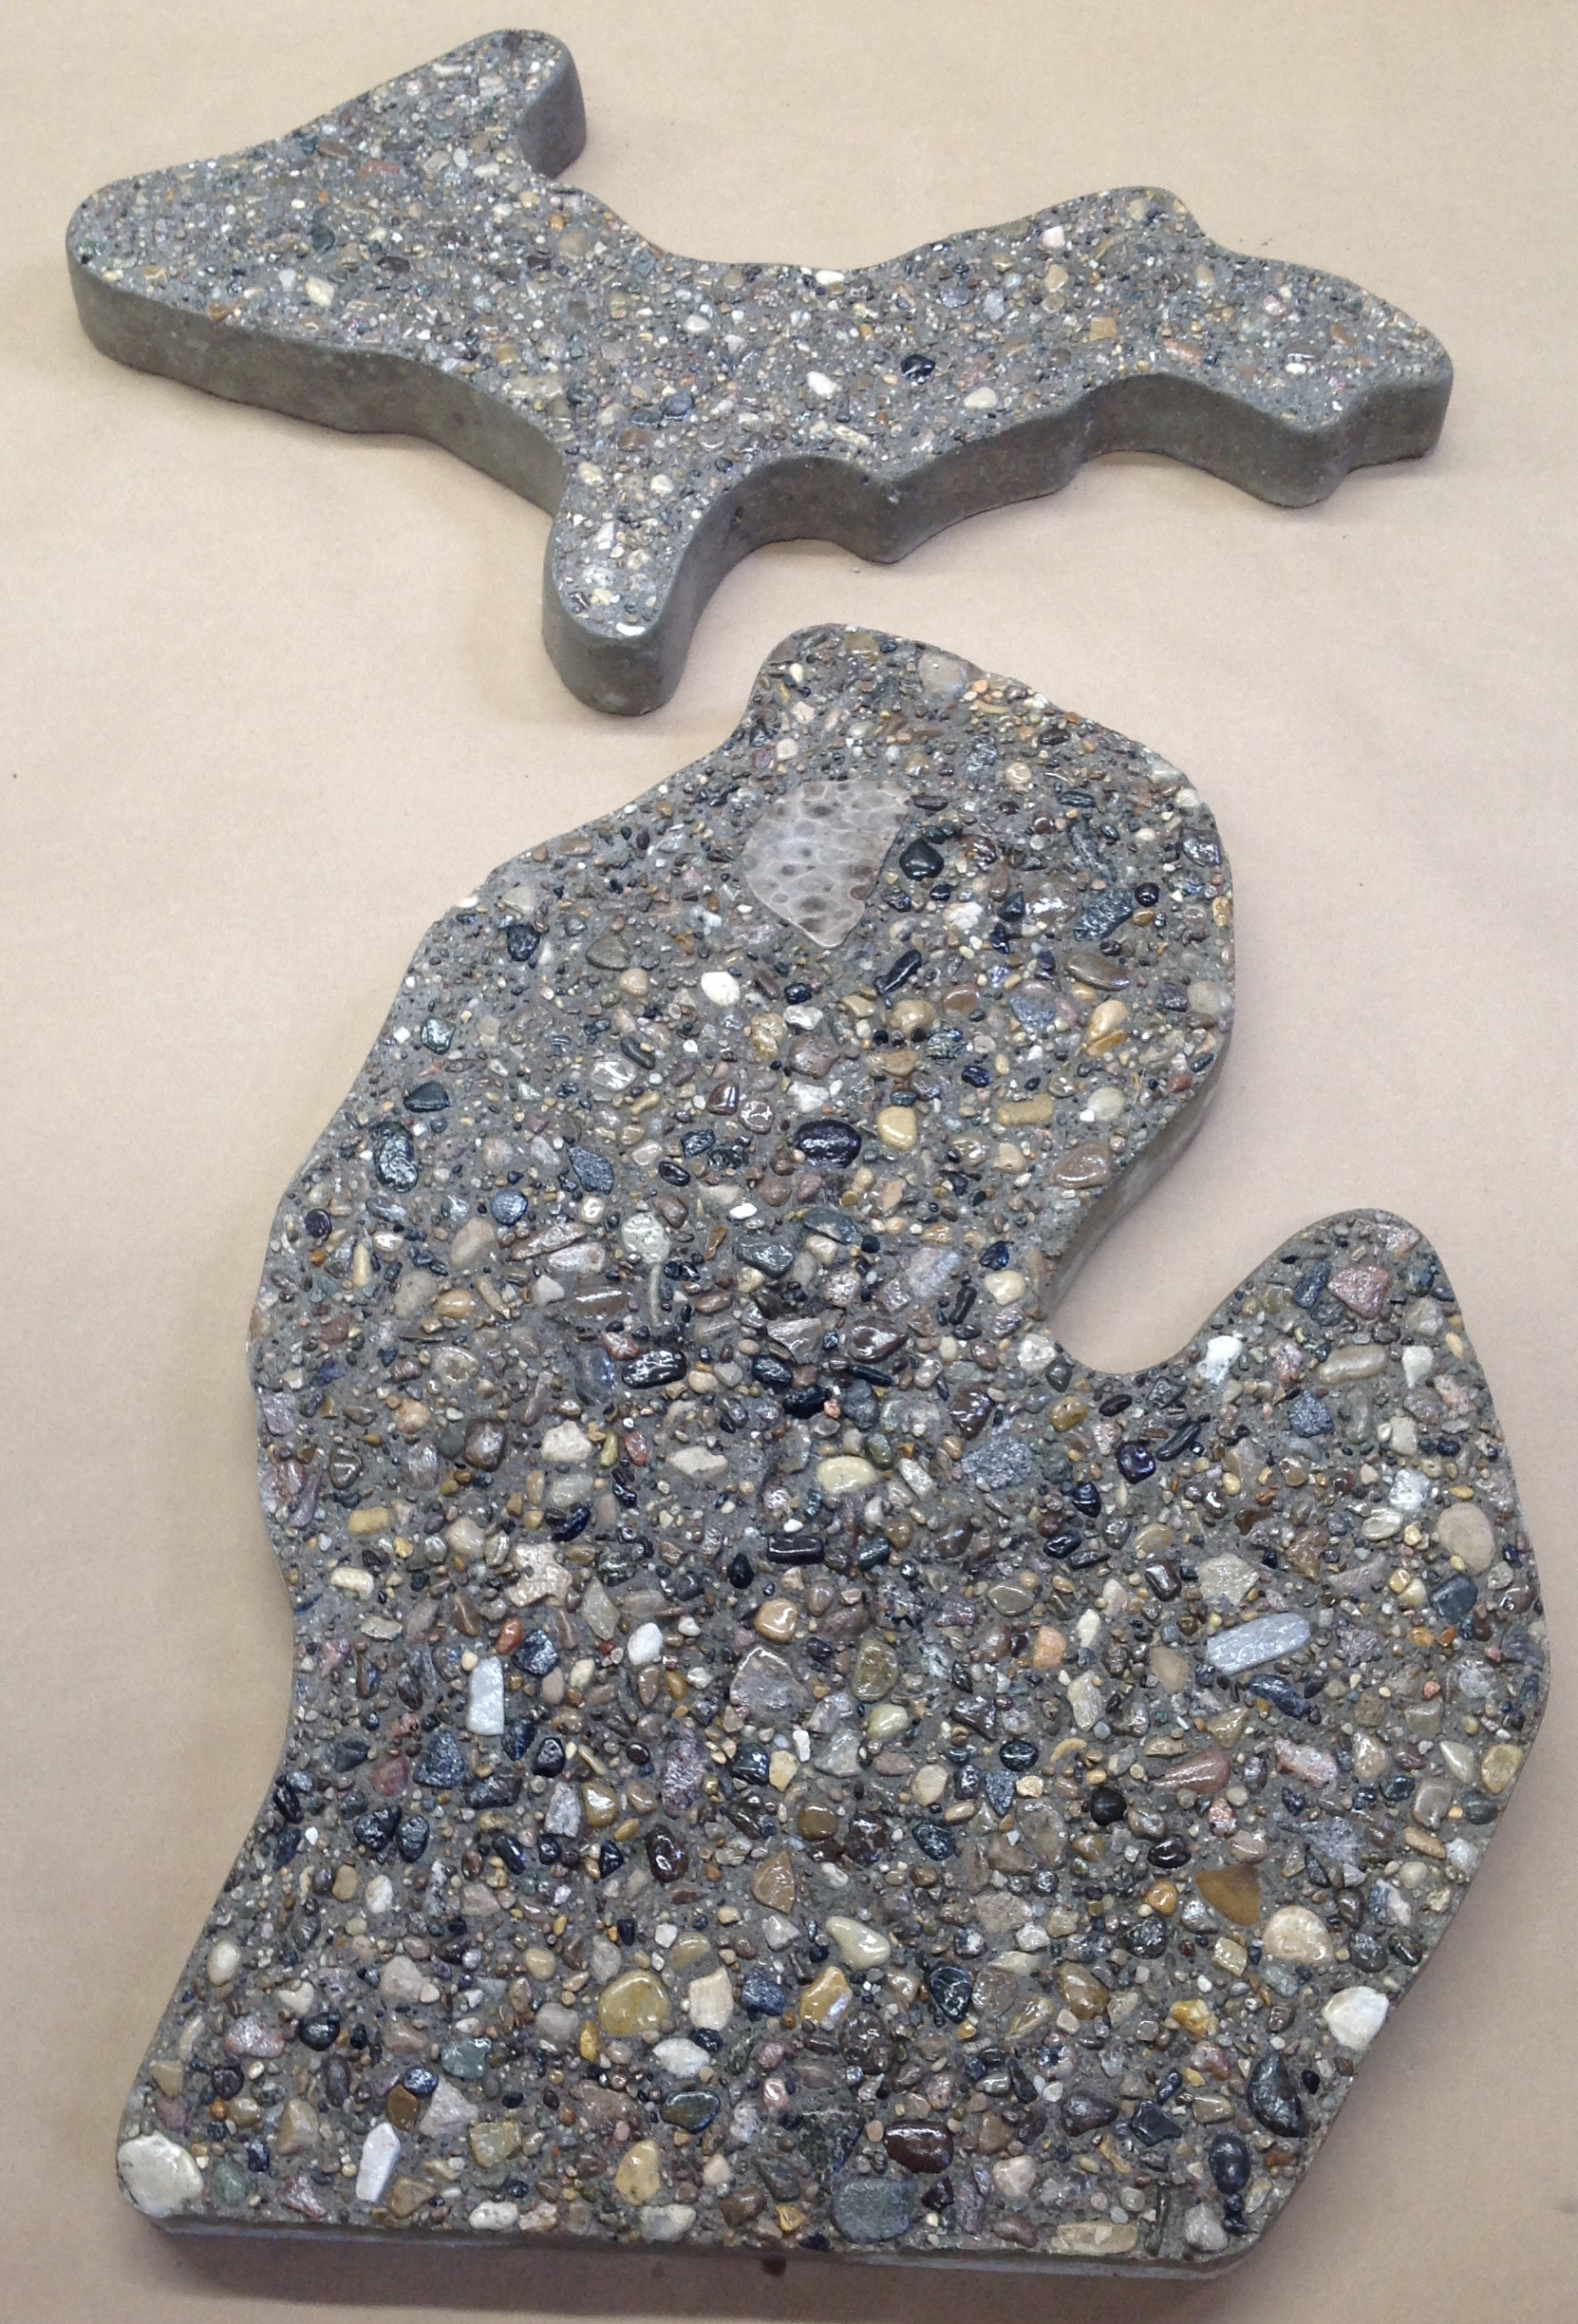 michigan stepping stone set with petoskey stone